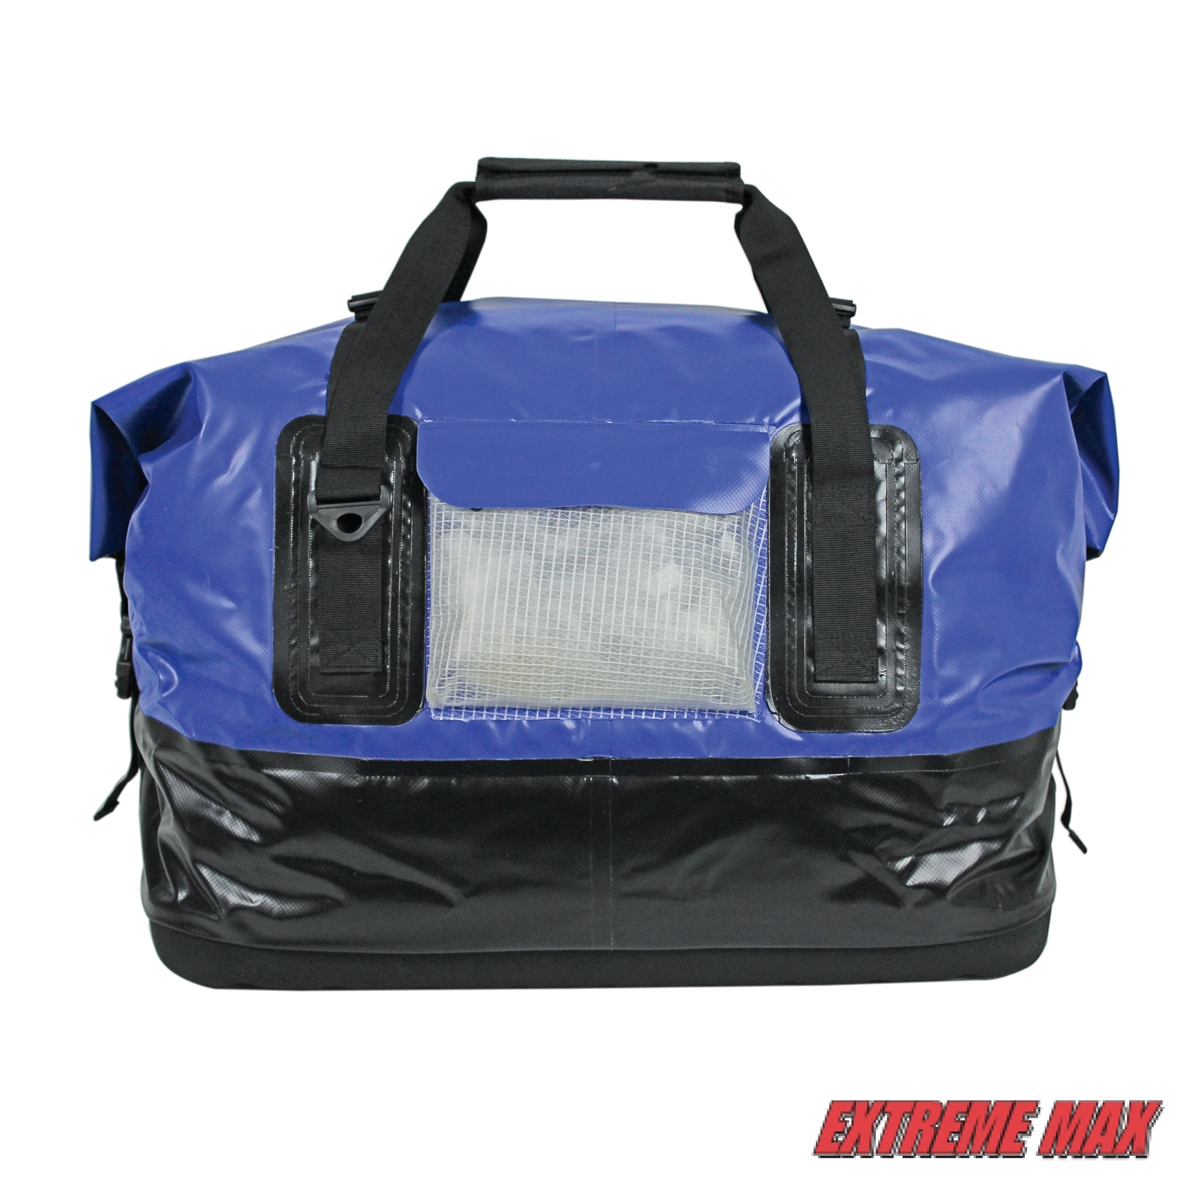 Extreme Max 3006 7342 Dry Tech Waterproof Roll Top Duffel Bag Large 70 Liter Blue